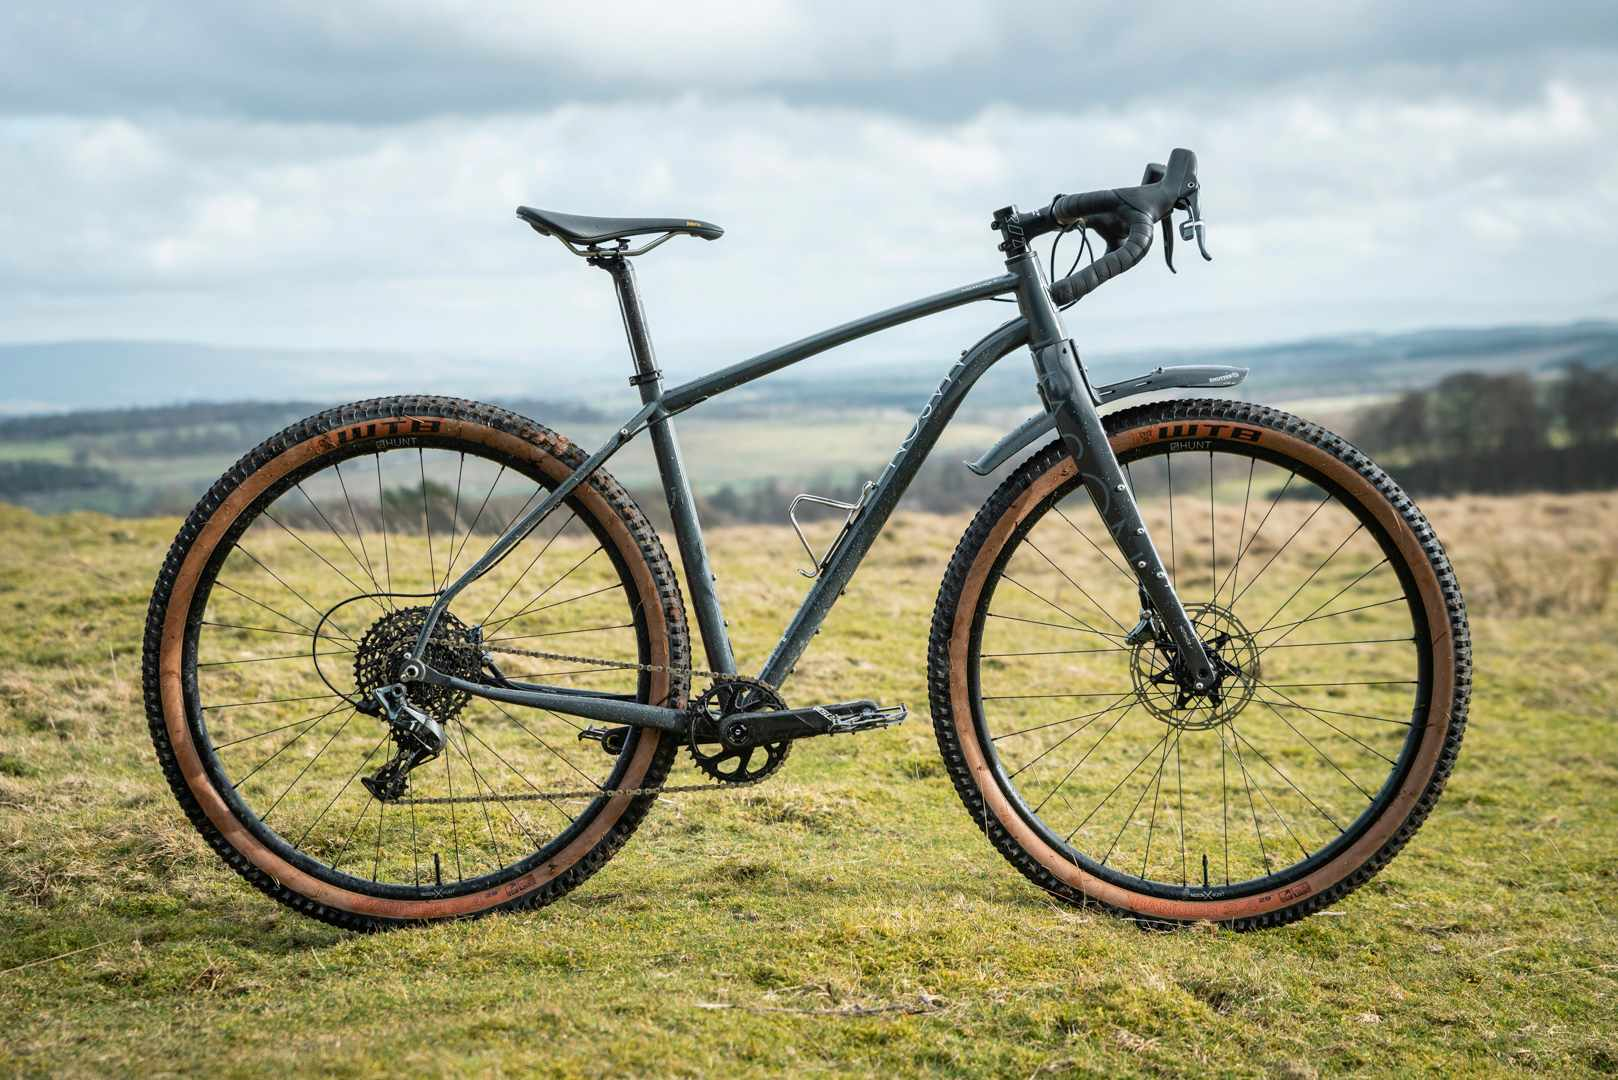 Mason InSearchOf | A Bike For Going Further